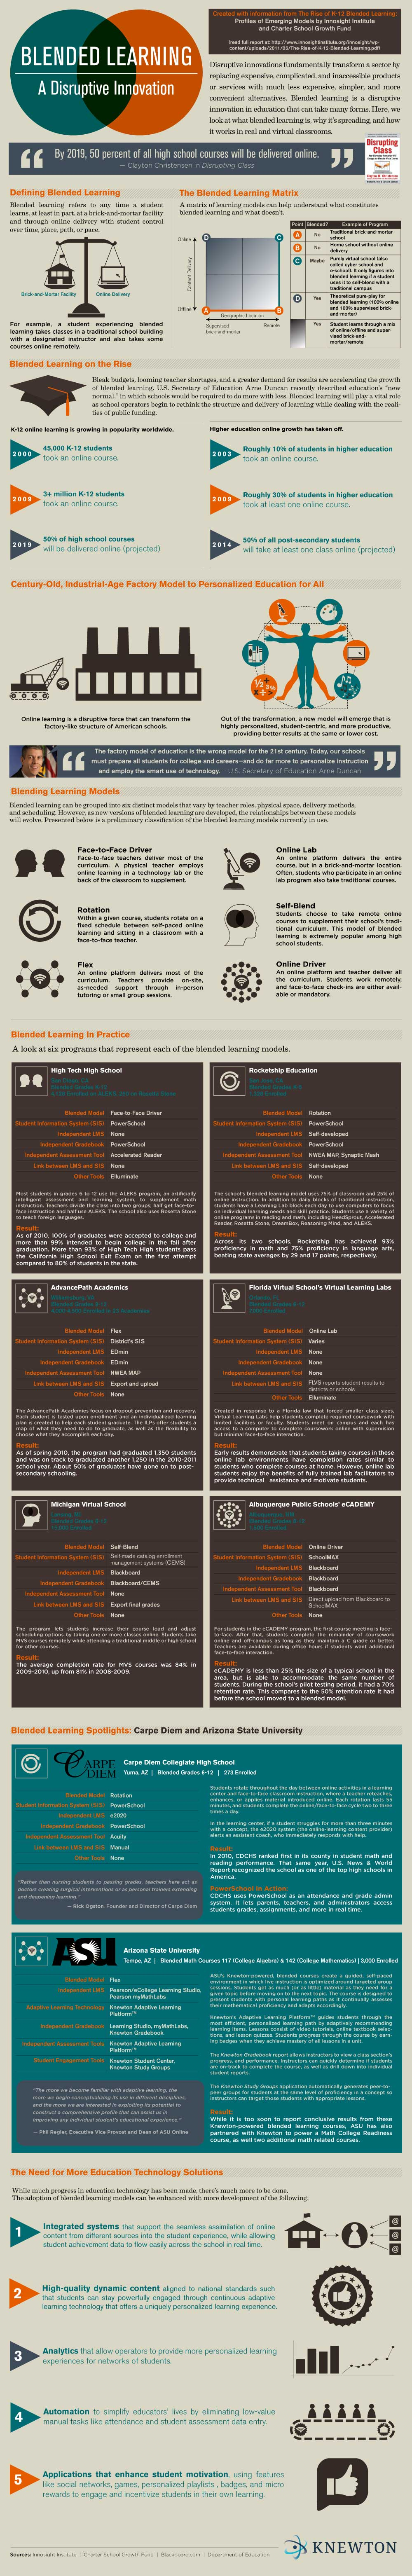 blended-learning-different-forms-infographic